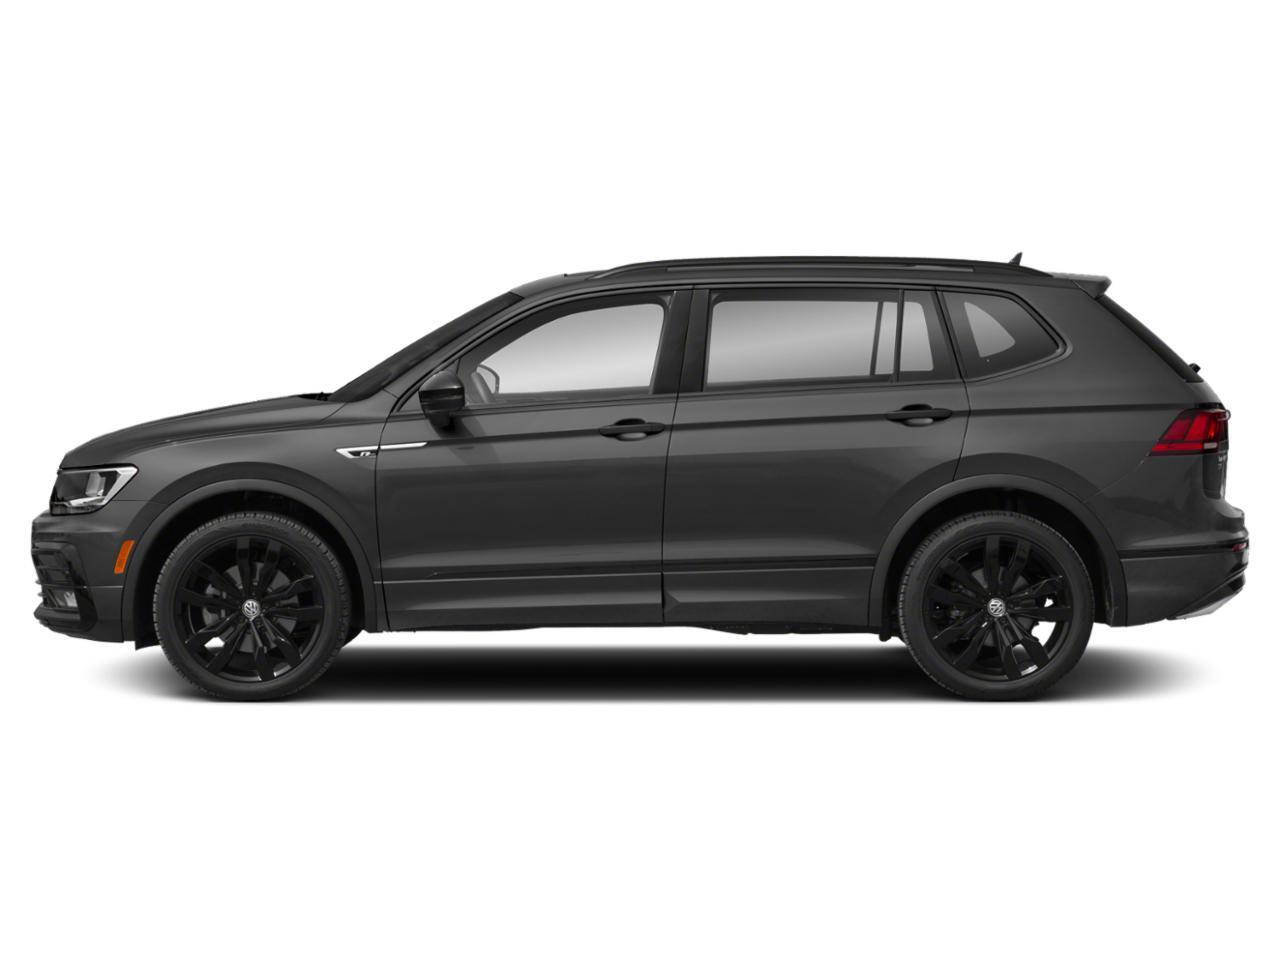 2021 Volkswagen Tiguan 2.0T SE R-Line Black Walnut Creek CA